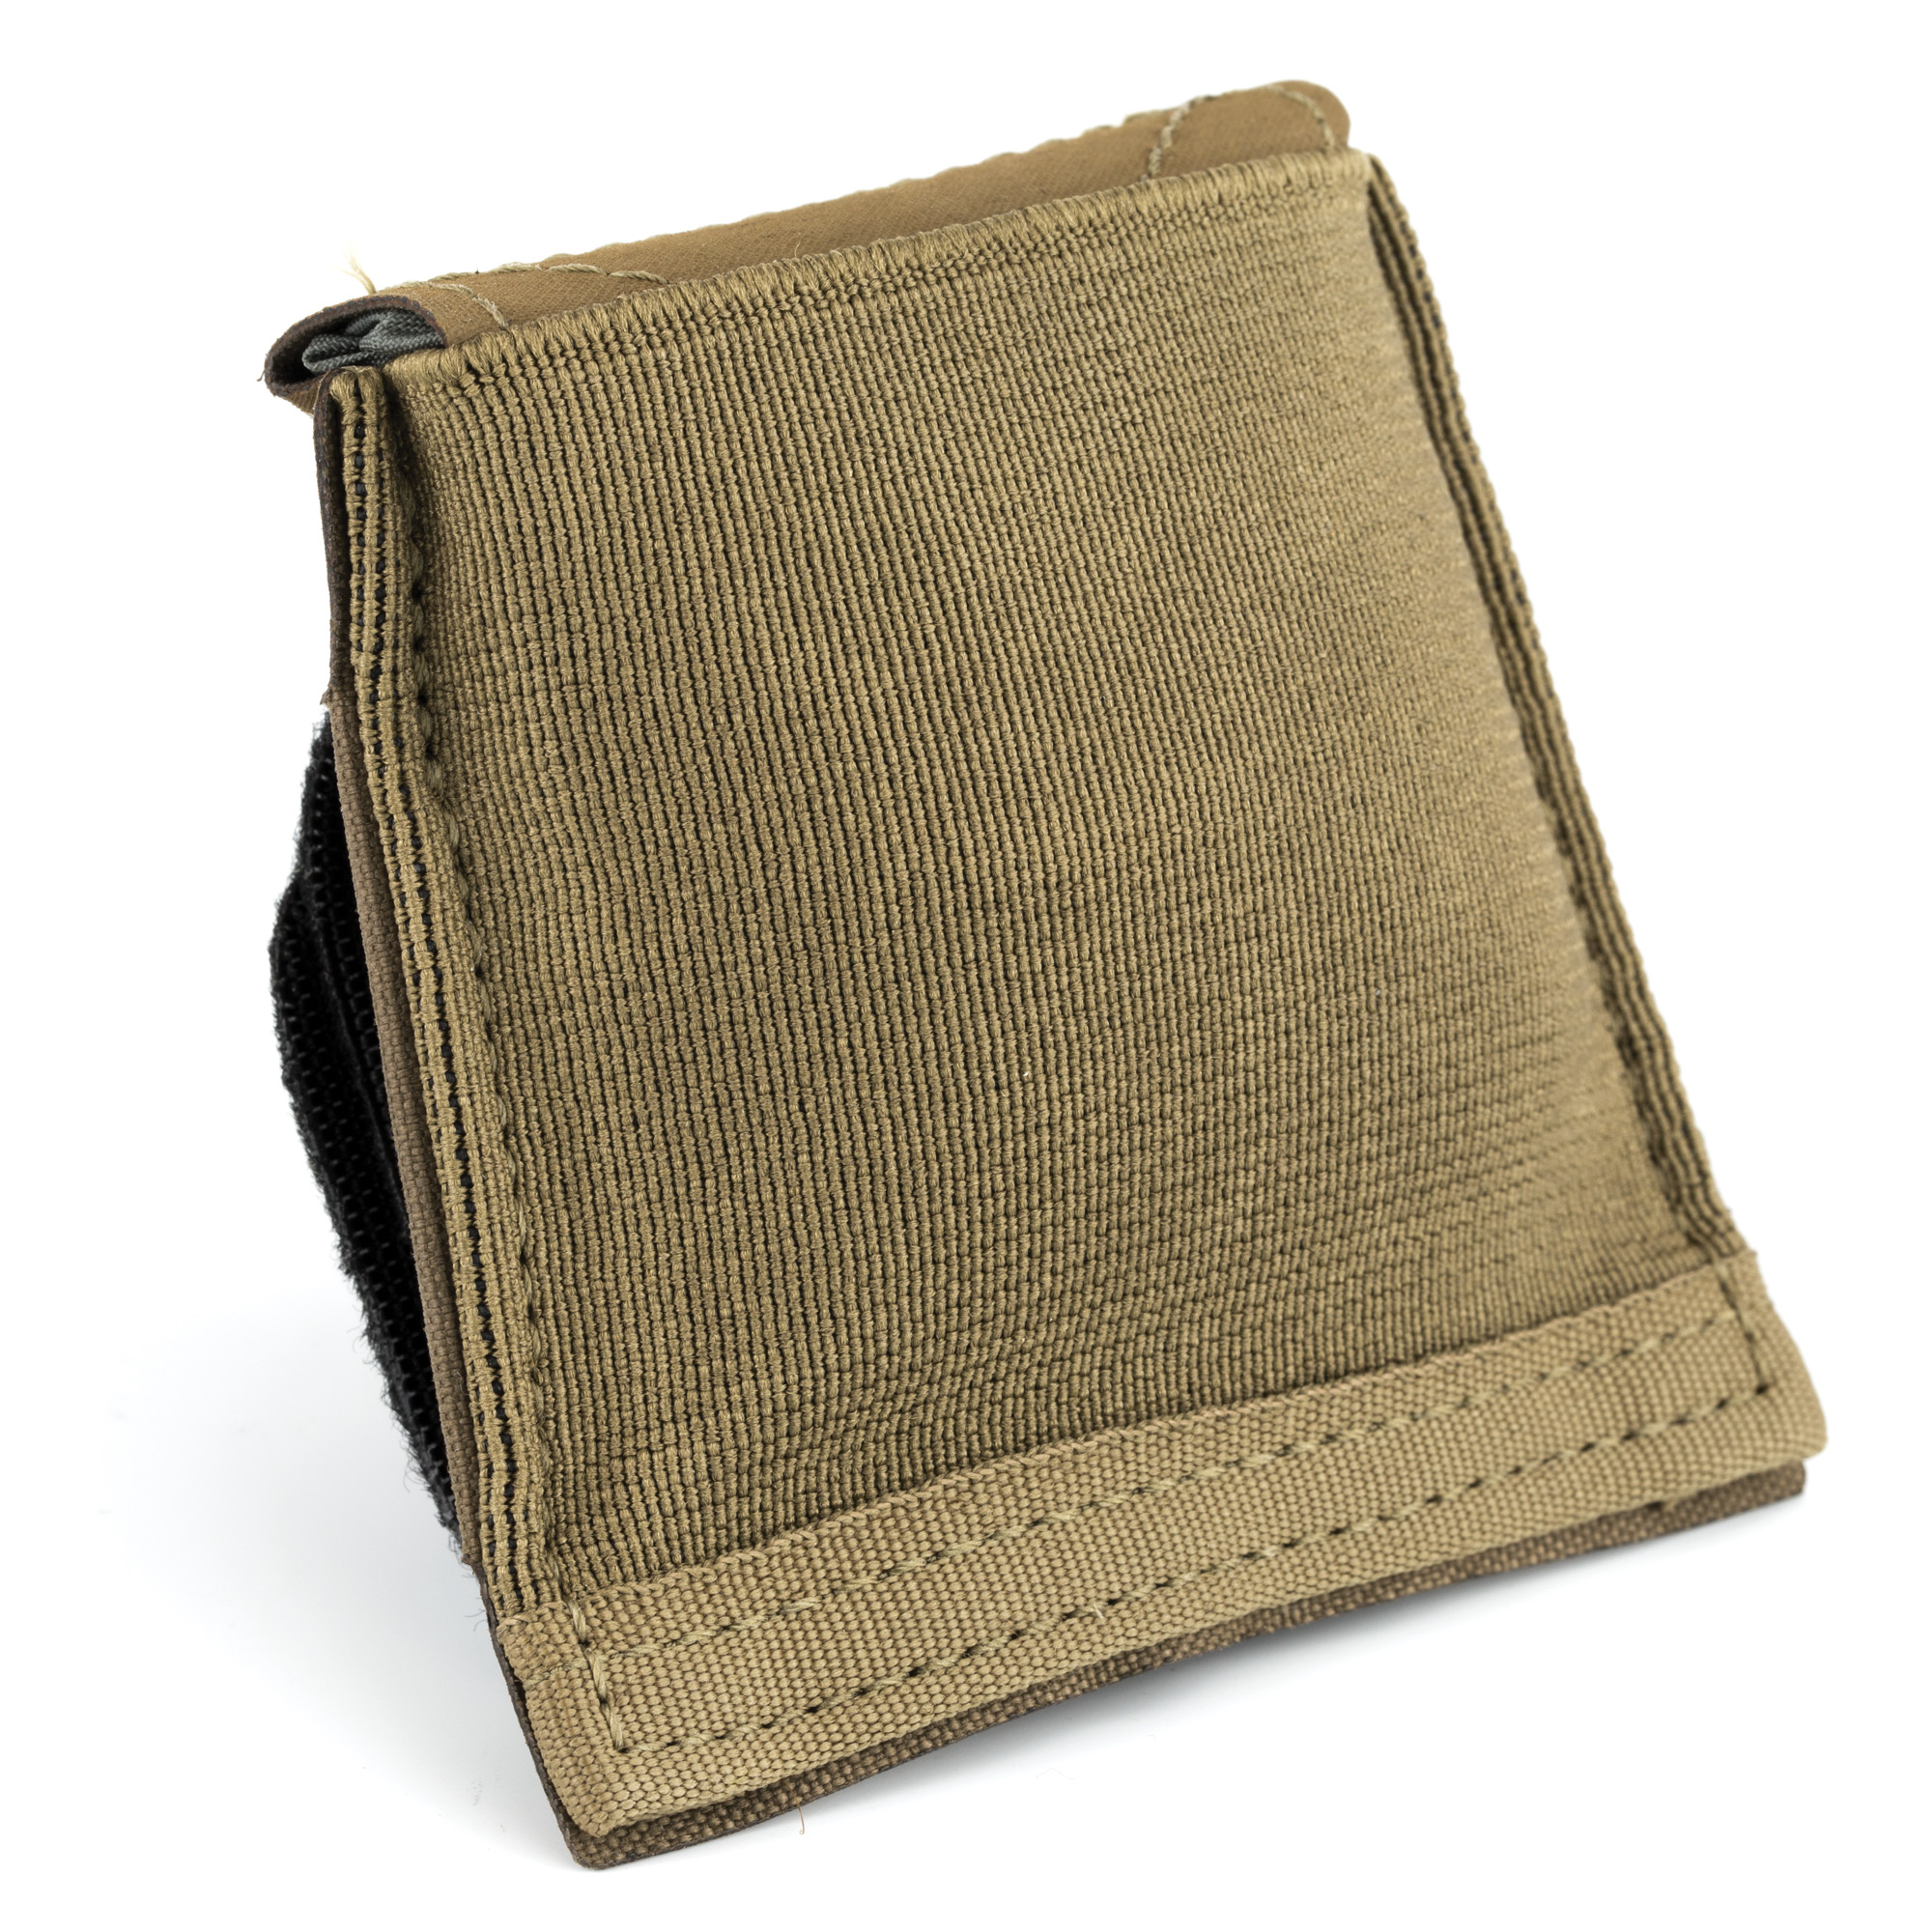 """The Belt Mounted Dump Belt Pouch brings the redefining Ten-Speed(R) Ultralight Dump Pouch to your belt. While not in use"""" the pouch's bag portion stays folded under Ten-Speed(R) elastic"""" making it extremely compact. When needed"""" a simple pull on the bottom tab deploys a bag big enough to hold 10 M4 magazines. The stowed pouch is small enough to be mounted to belts"""" and eliminates the potential snag hazard created by bulky bags which have the tendency to flop around. A cinch cord at the top of the bag can be closed with one hand to secure the contents of the dump pouch. The Dump Belt Pouch sufficiently functions as a traditional magazine dump pouch"""" or as a temporary supplemental pouch for items like breaching charges"""" provisions"""" SSE items"""" trash"""" spent casings"""" or extra water bottles during infiltration. The rip stop nylon bag can be used for foraging for food"""" kindling"""" or even work as an emergency water filtration component."""